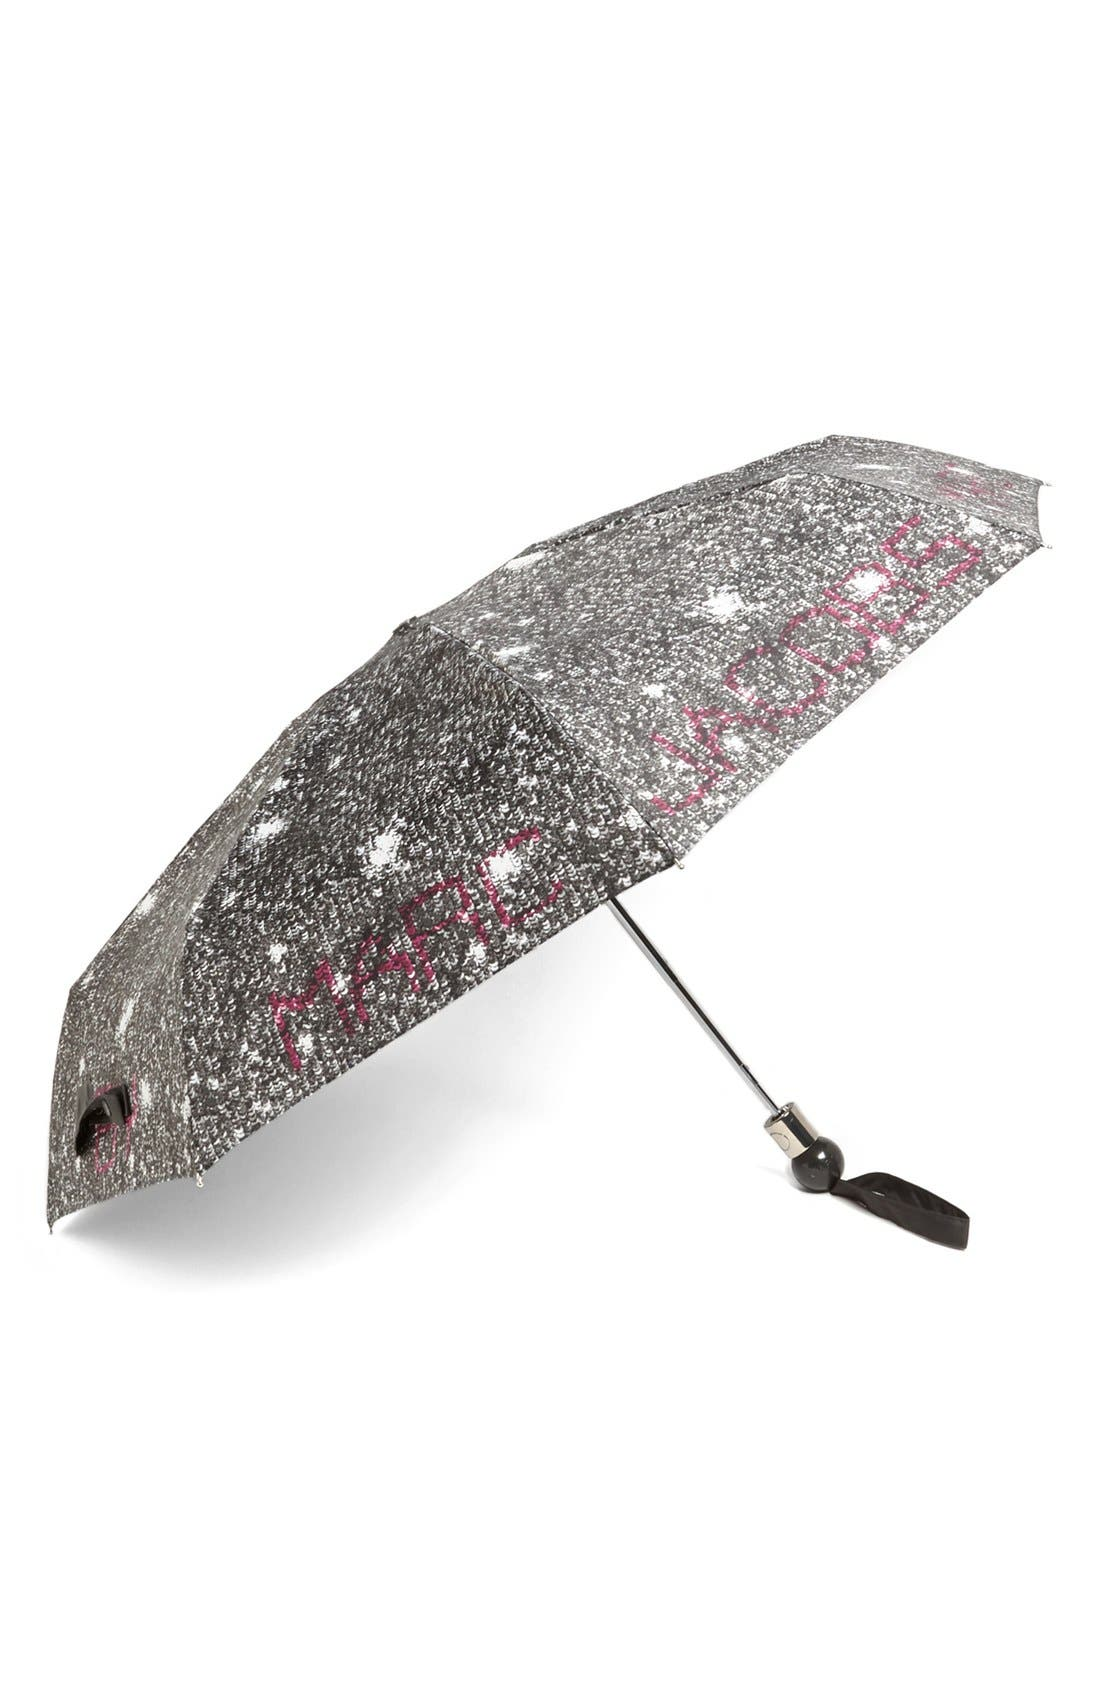 MARC BY MARC JACOBS 'Twilight' Umbrella,                         Main,                         color, Black Multi